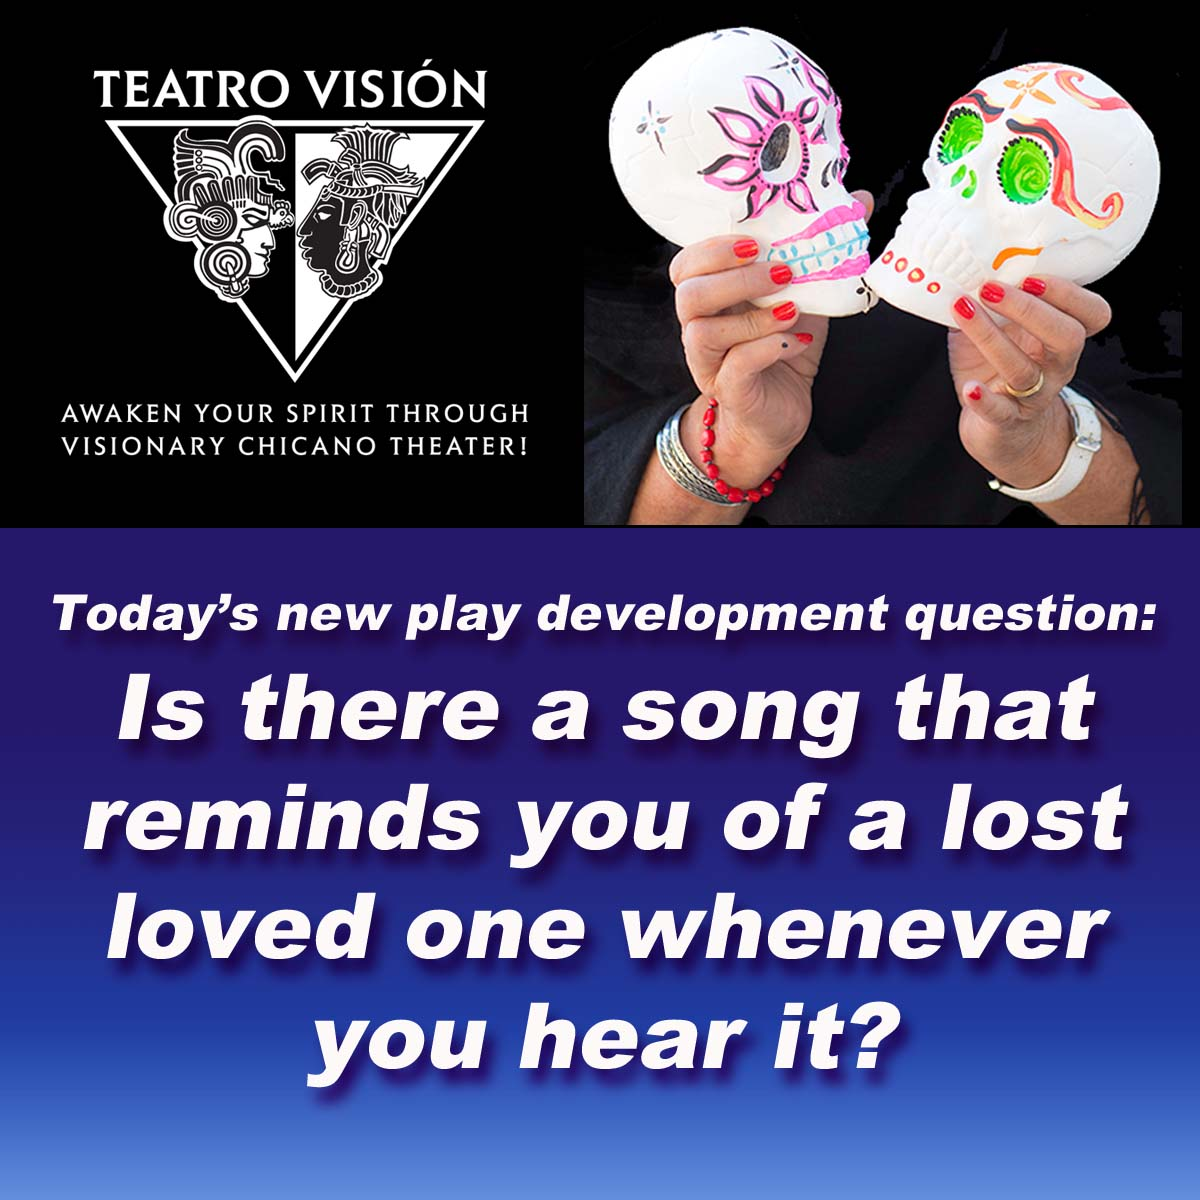 A social media posting of a new play development question asking \